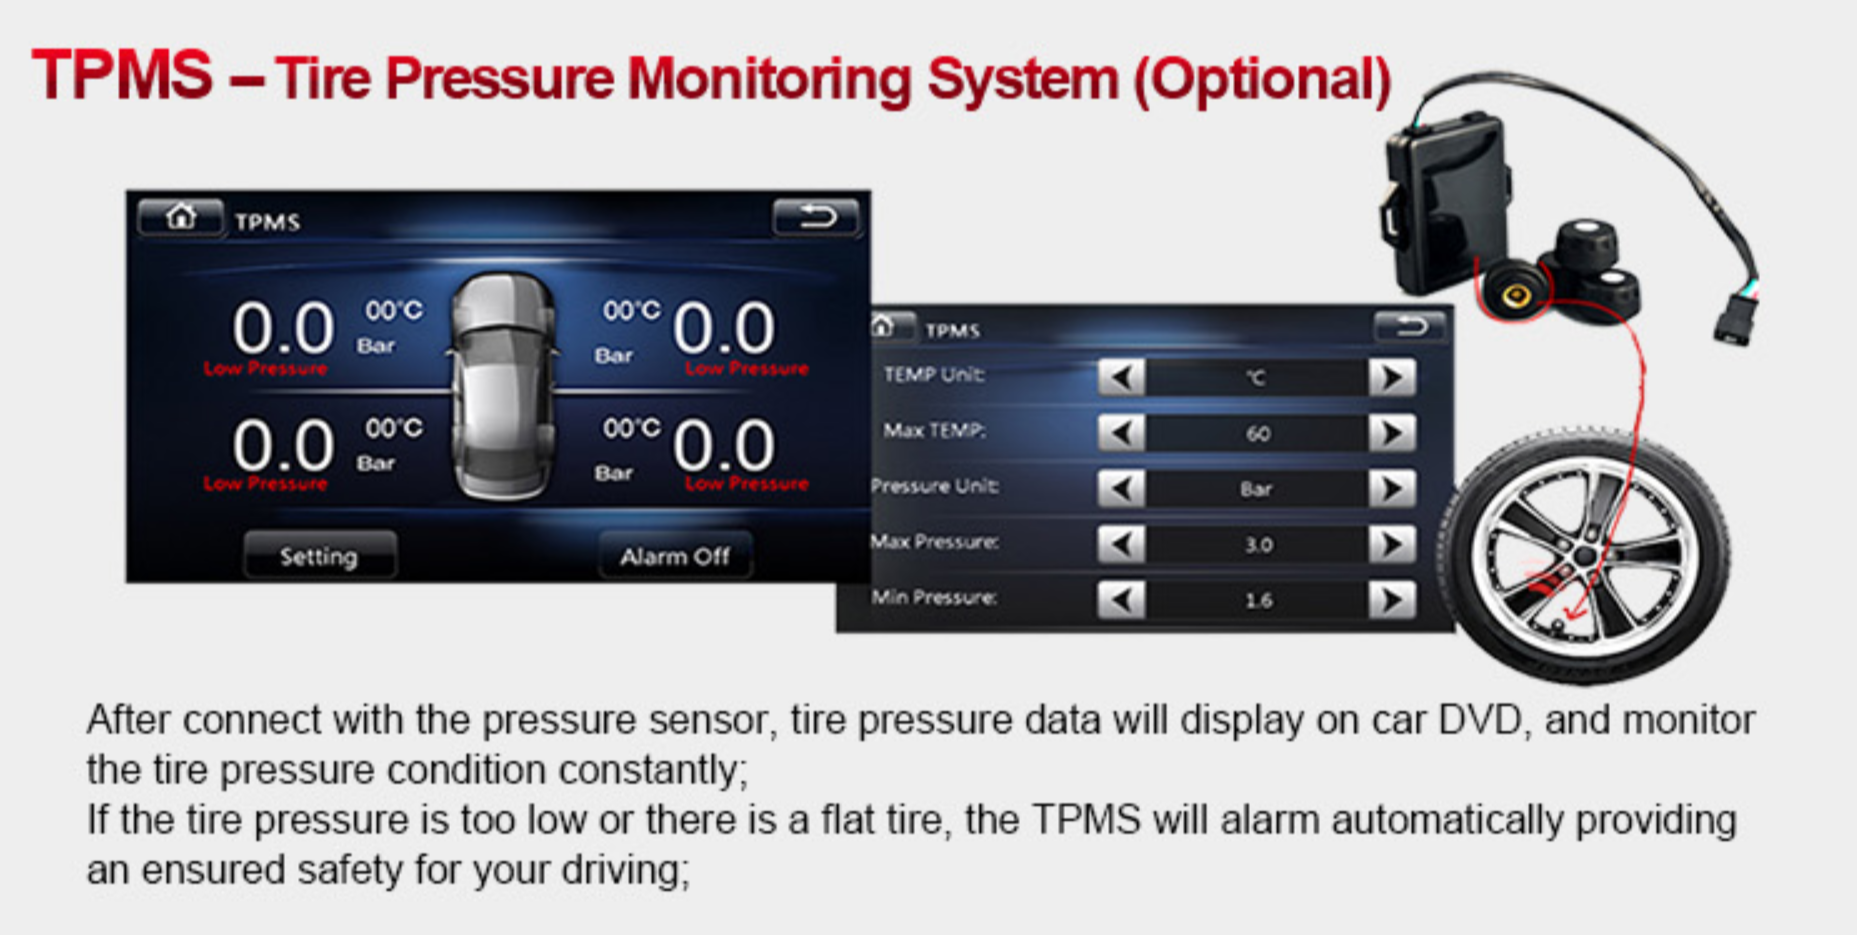 Tire Pressure Monitor >> Tyre Pressure Monitor System Tpms For Car Dvd Head Unit Models Pma Auto Works